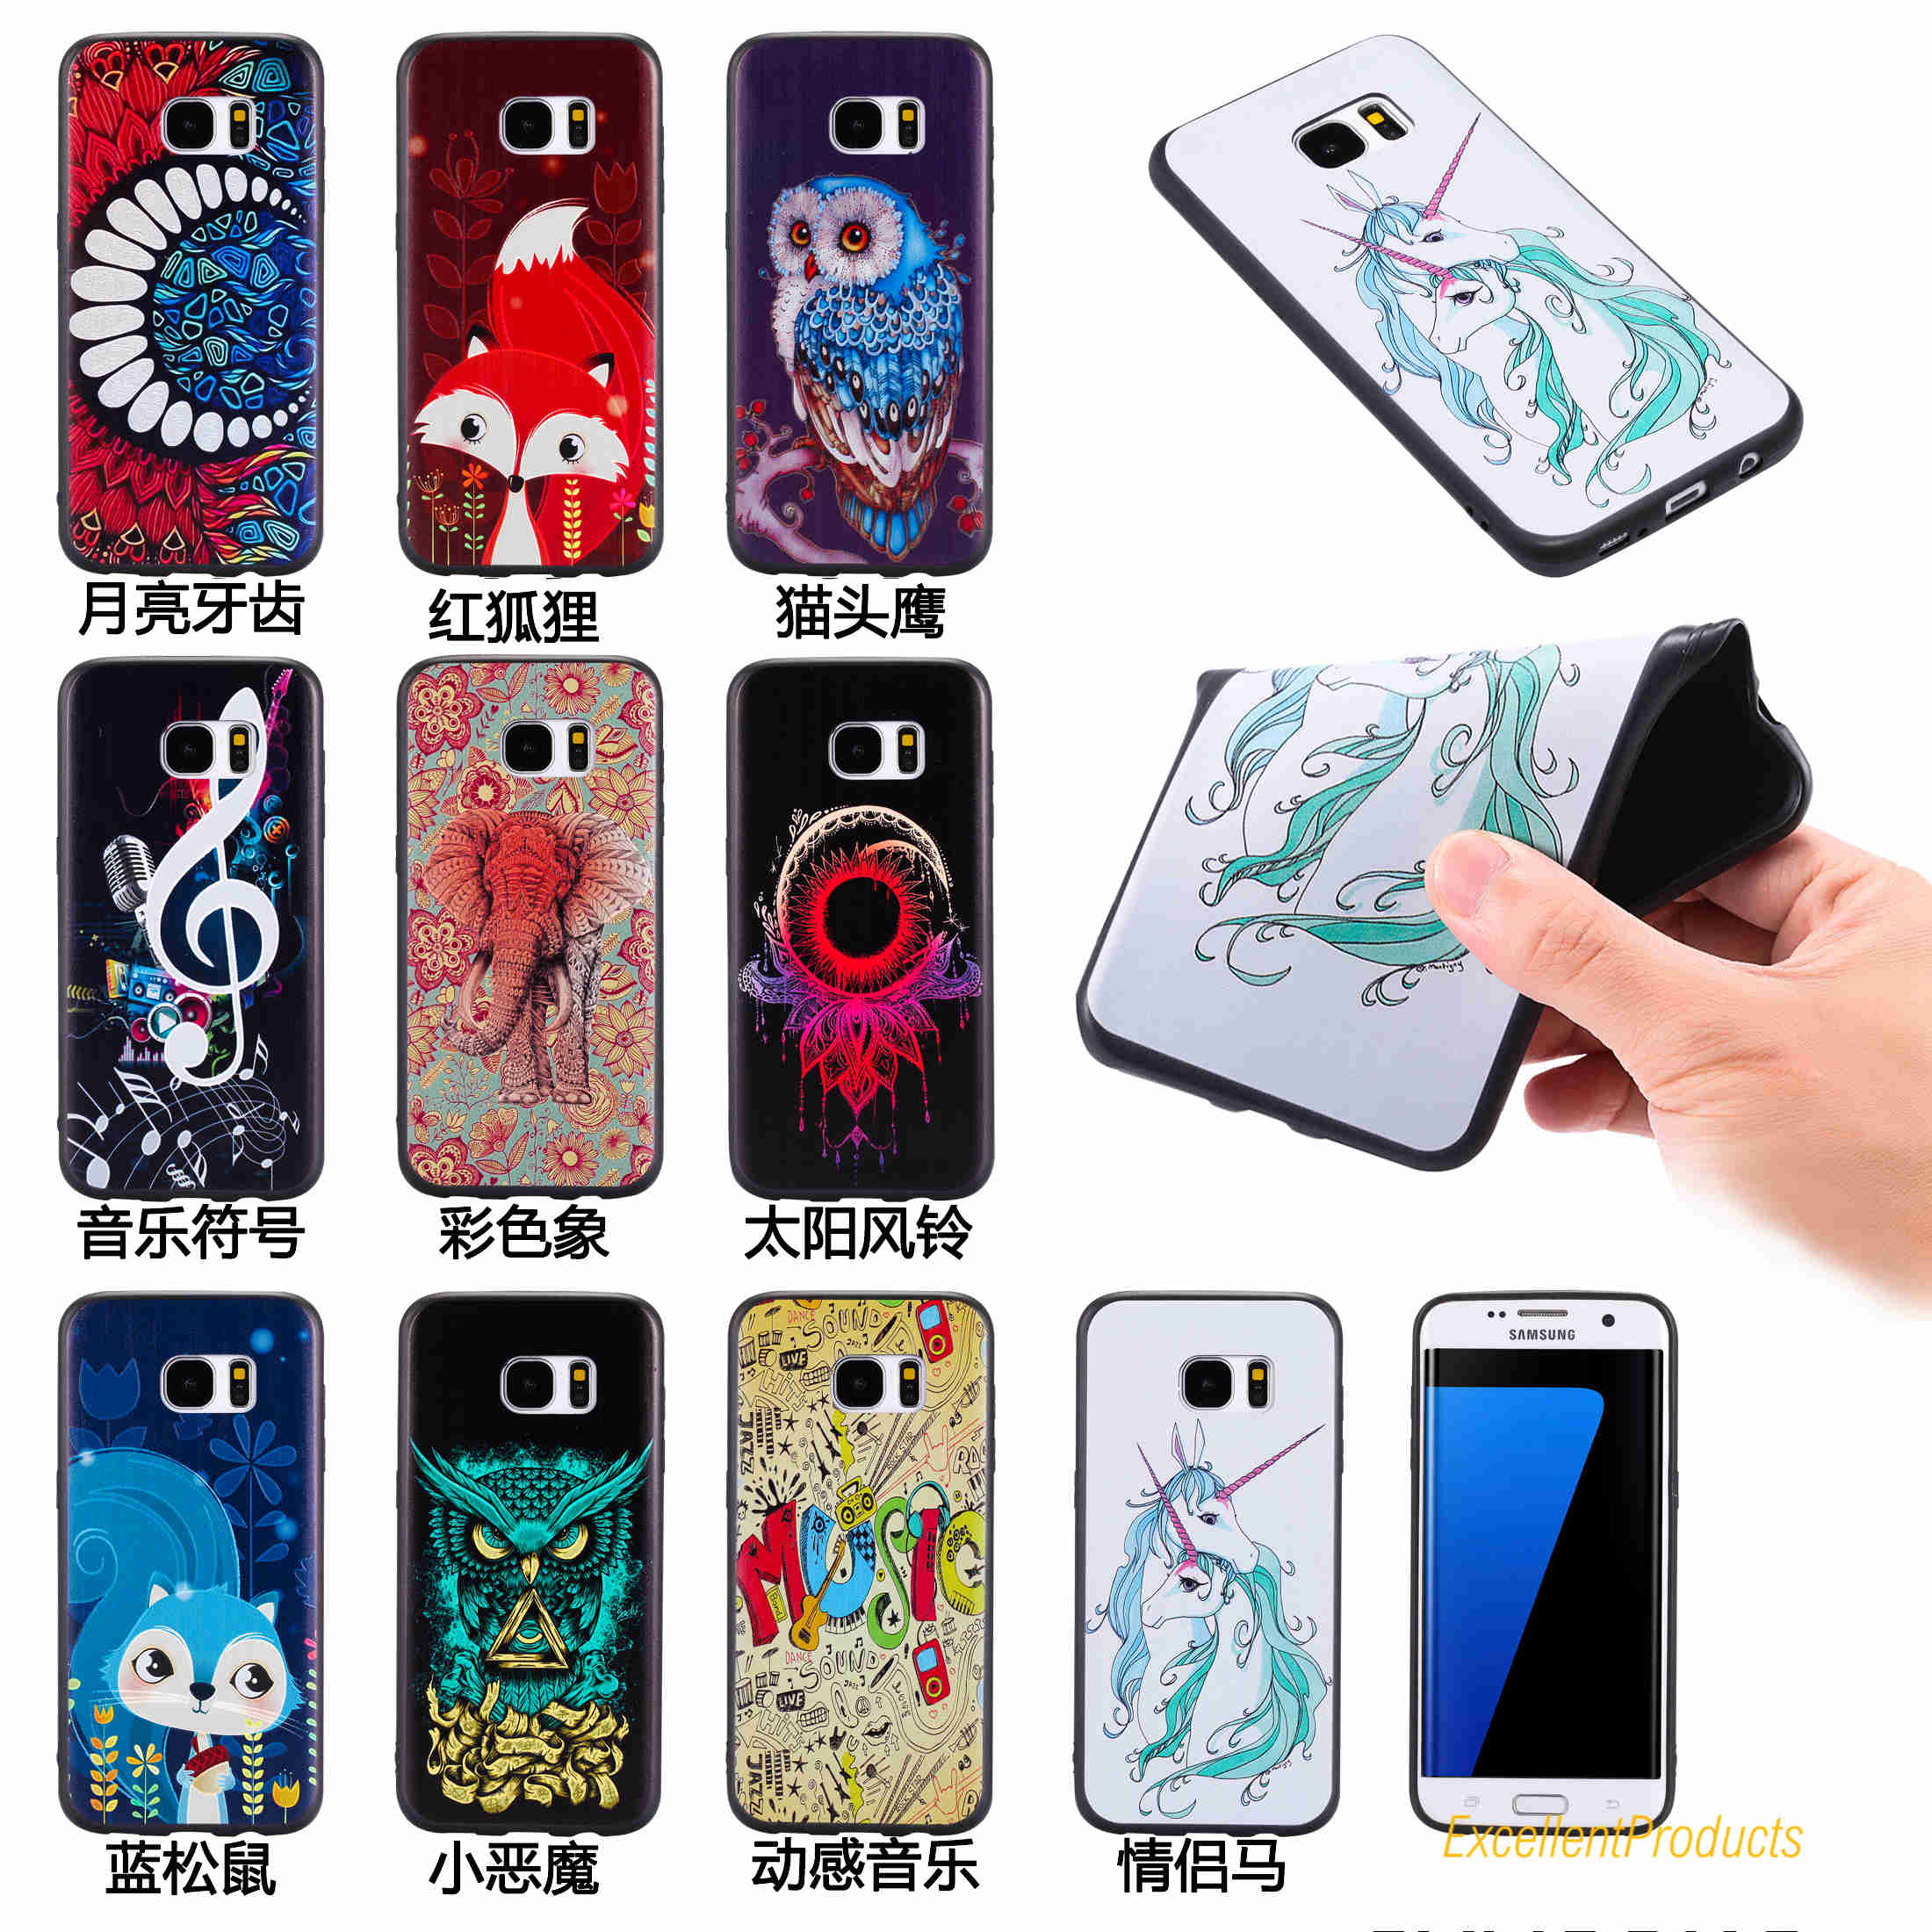 For Samsung s7 edge Phone Case Protect Cartoon Relief Painting Soft TPU Silicon Black Cover For Samsung s7 edge Capa